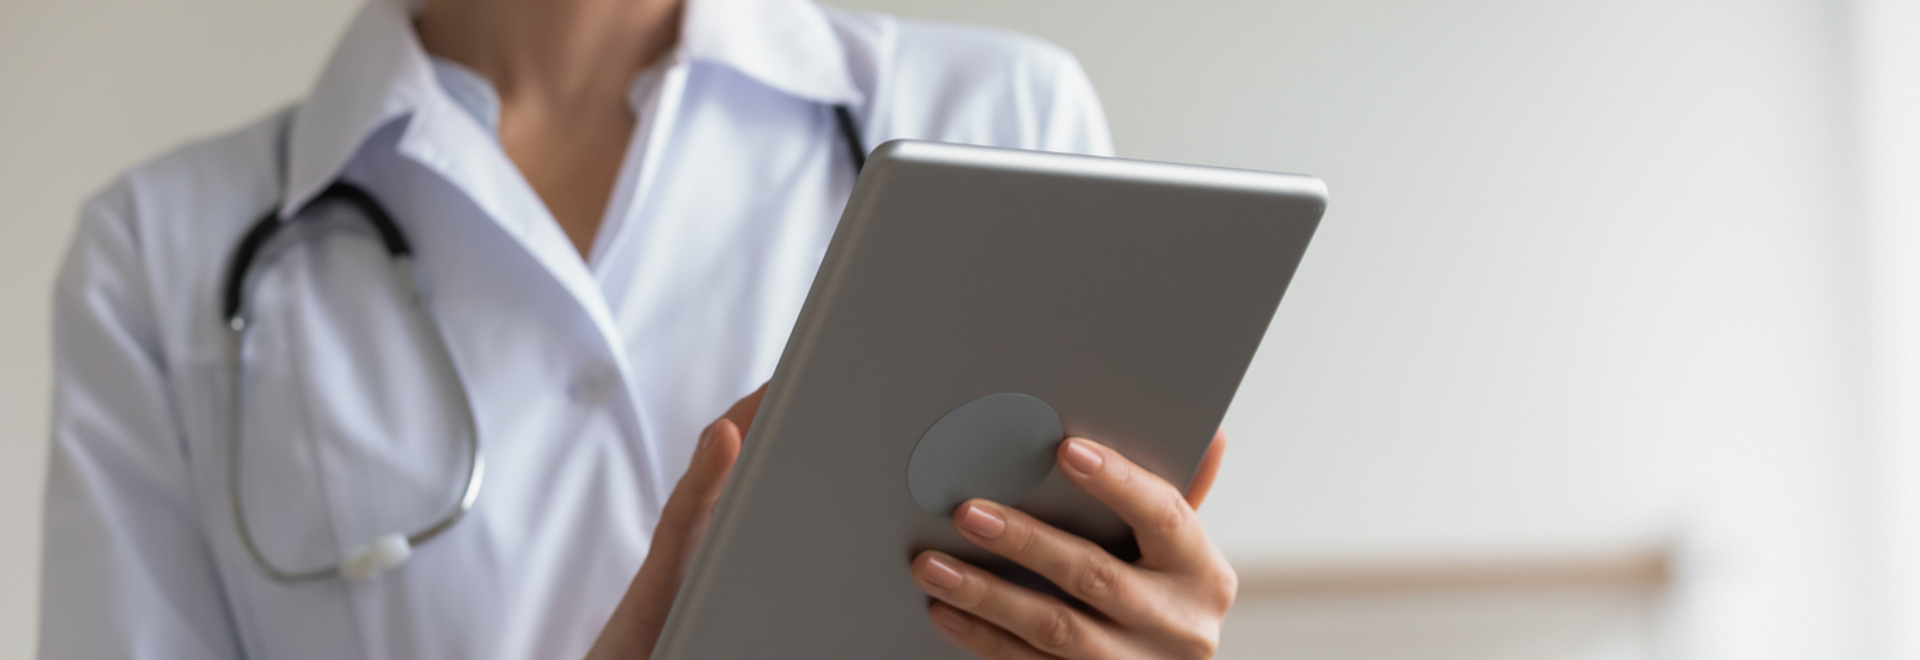 Healthcare professionals are losing a lot of time on administrative tasks because of unsuitable IT systems, particularly due to the under-use of connected objects